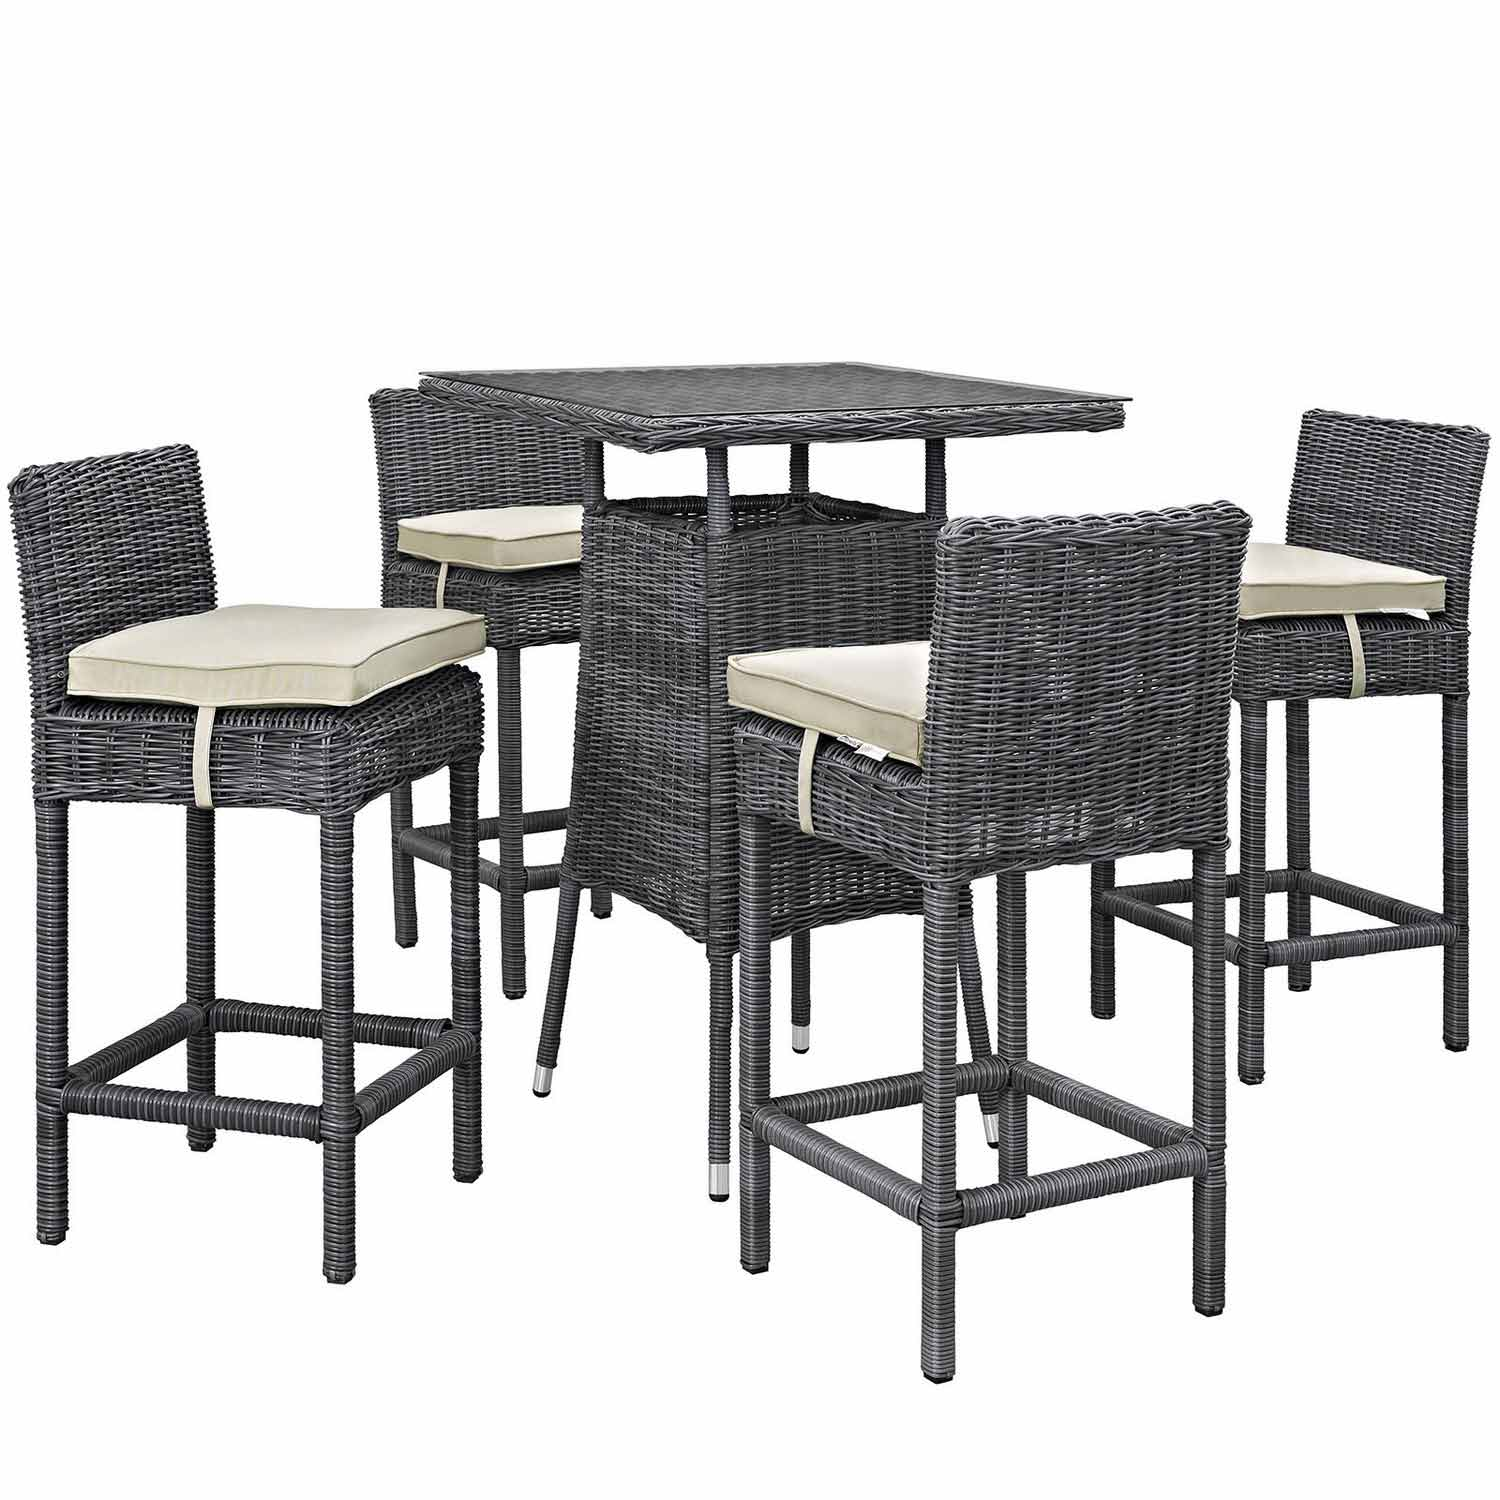 Modway Summon 5 Piece Outdoor Patio Sunbrella Pub Set - Antique Canvas Beige